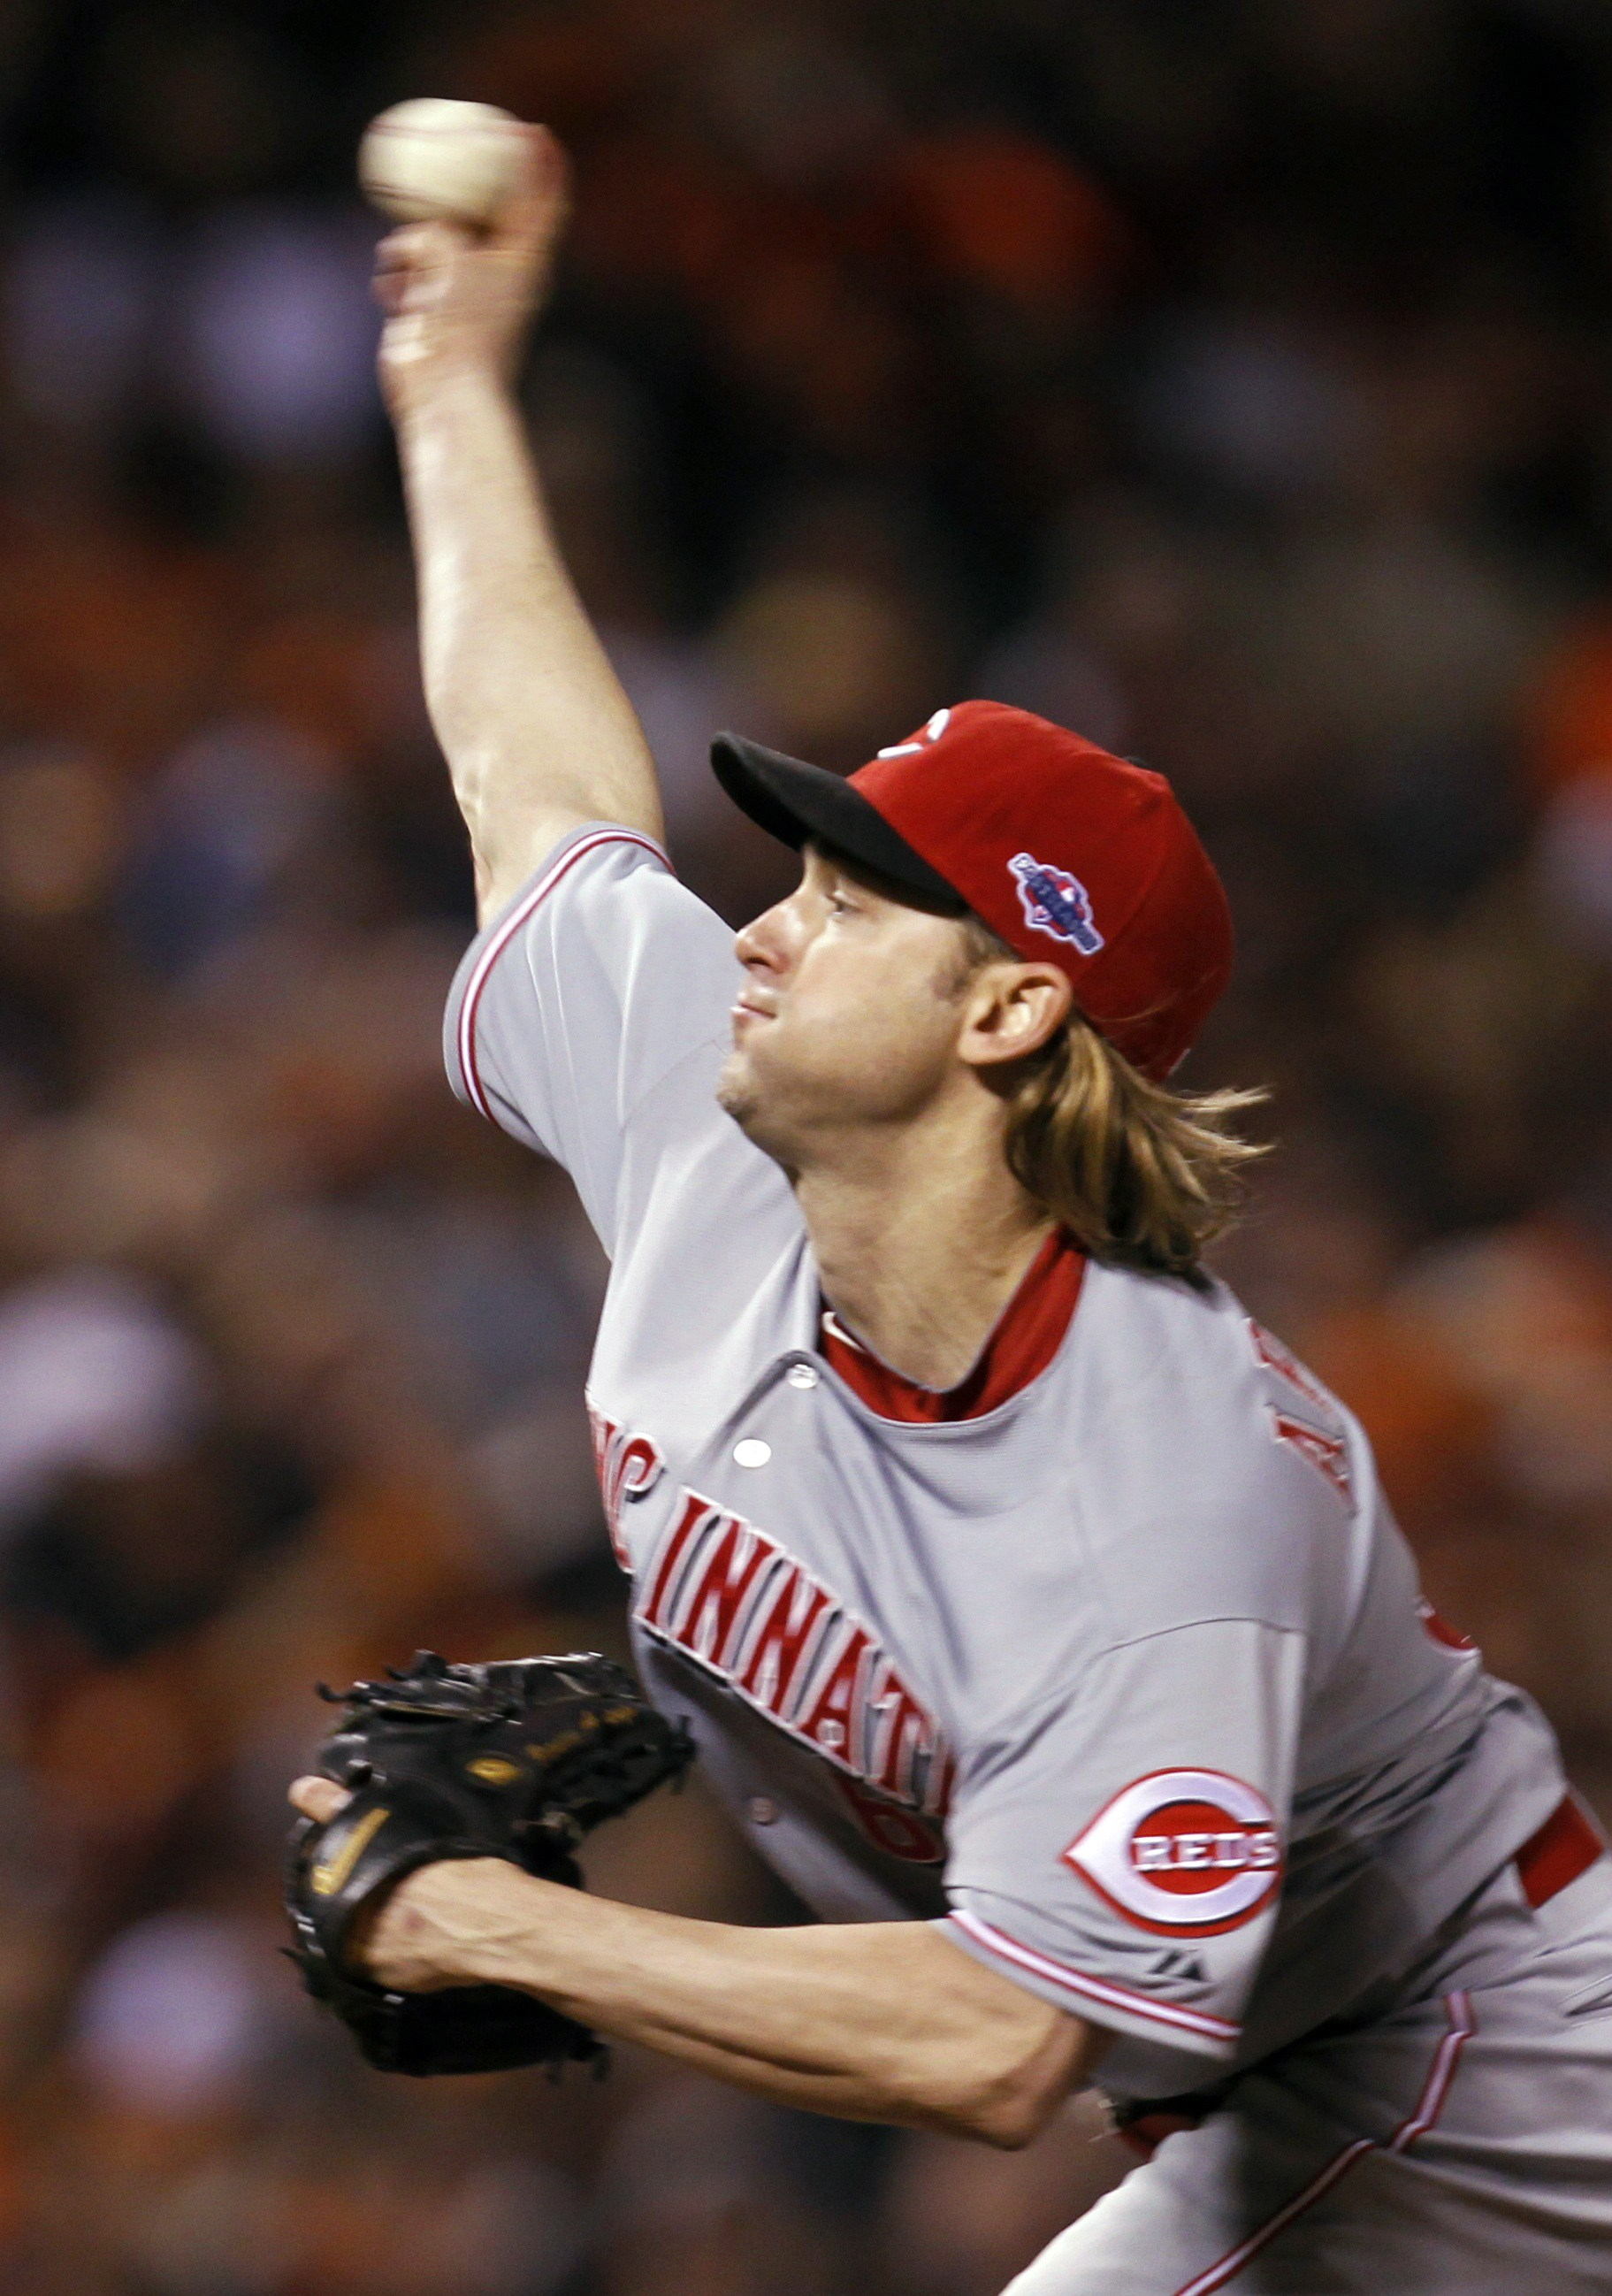 Bronson Arroyo allowed just one hit over seven innings in the Reds' 9-0 victory. (Reuters)